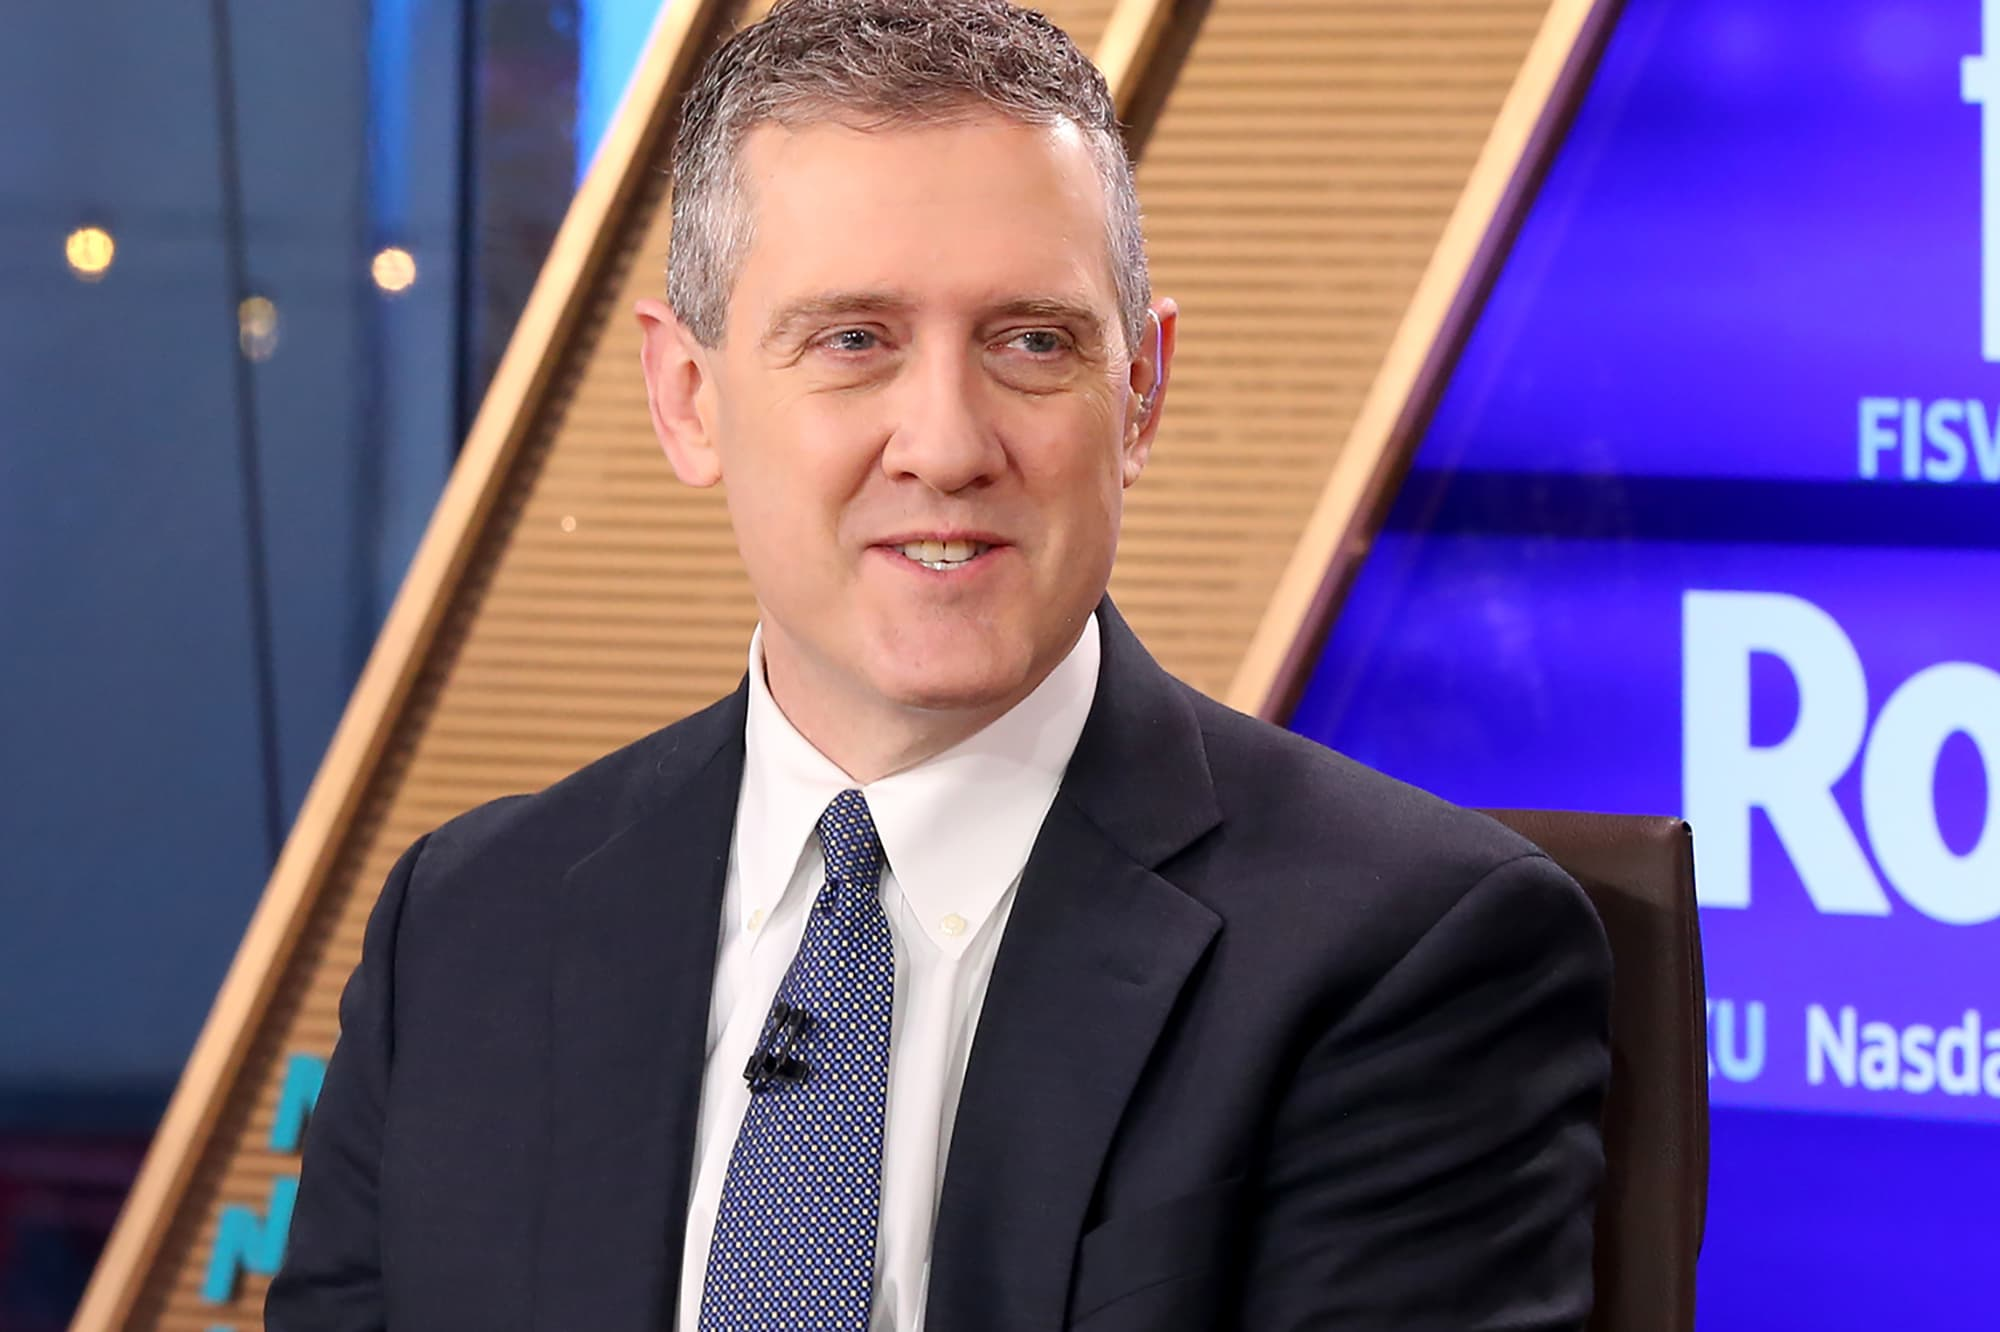 Fed's Bullard says bond purchases should be tapered quickly in case rate hikes are needed